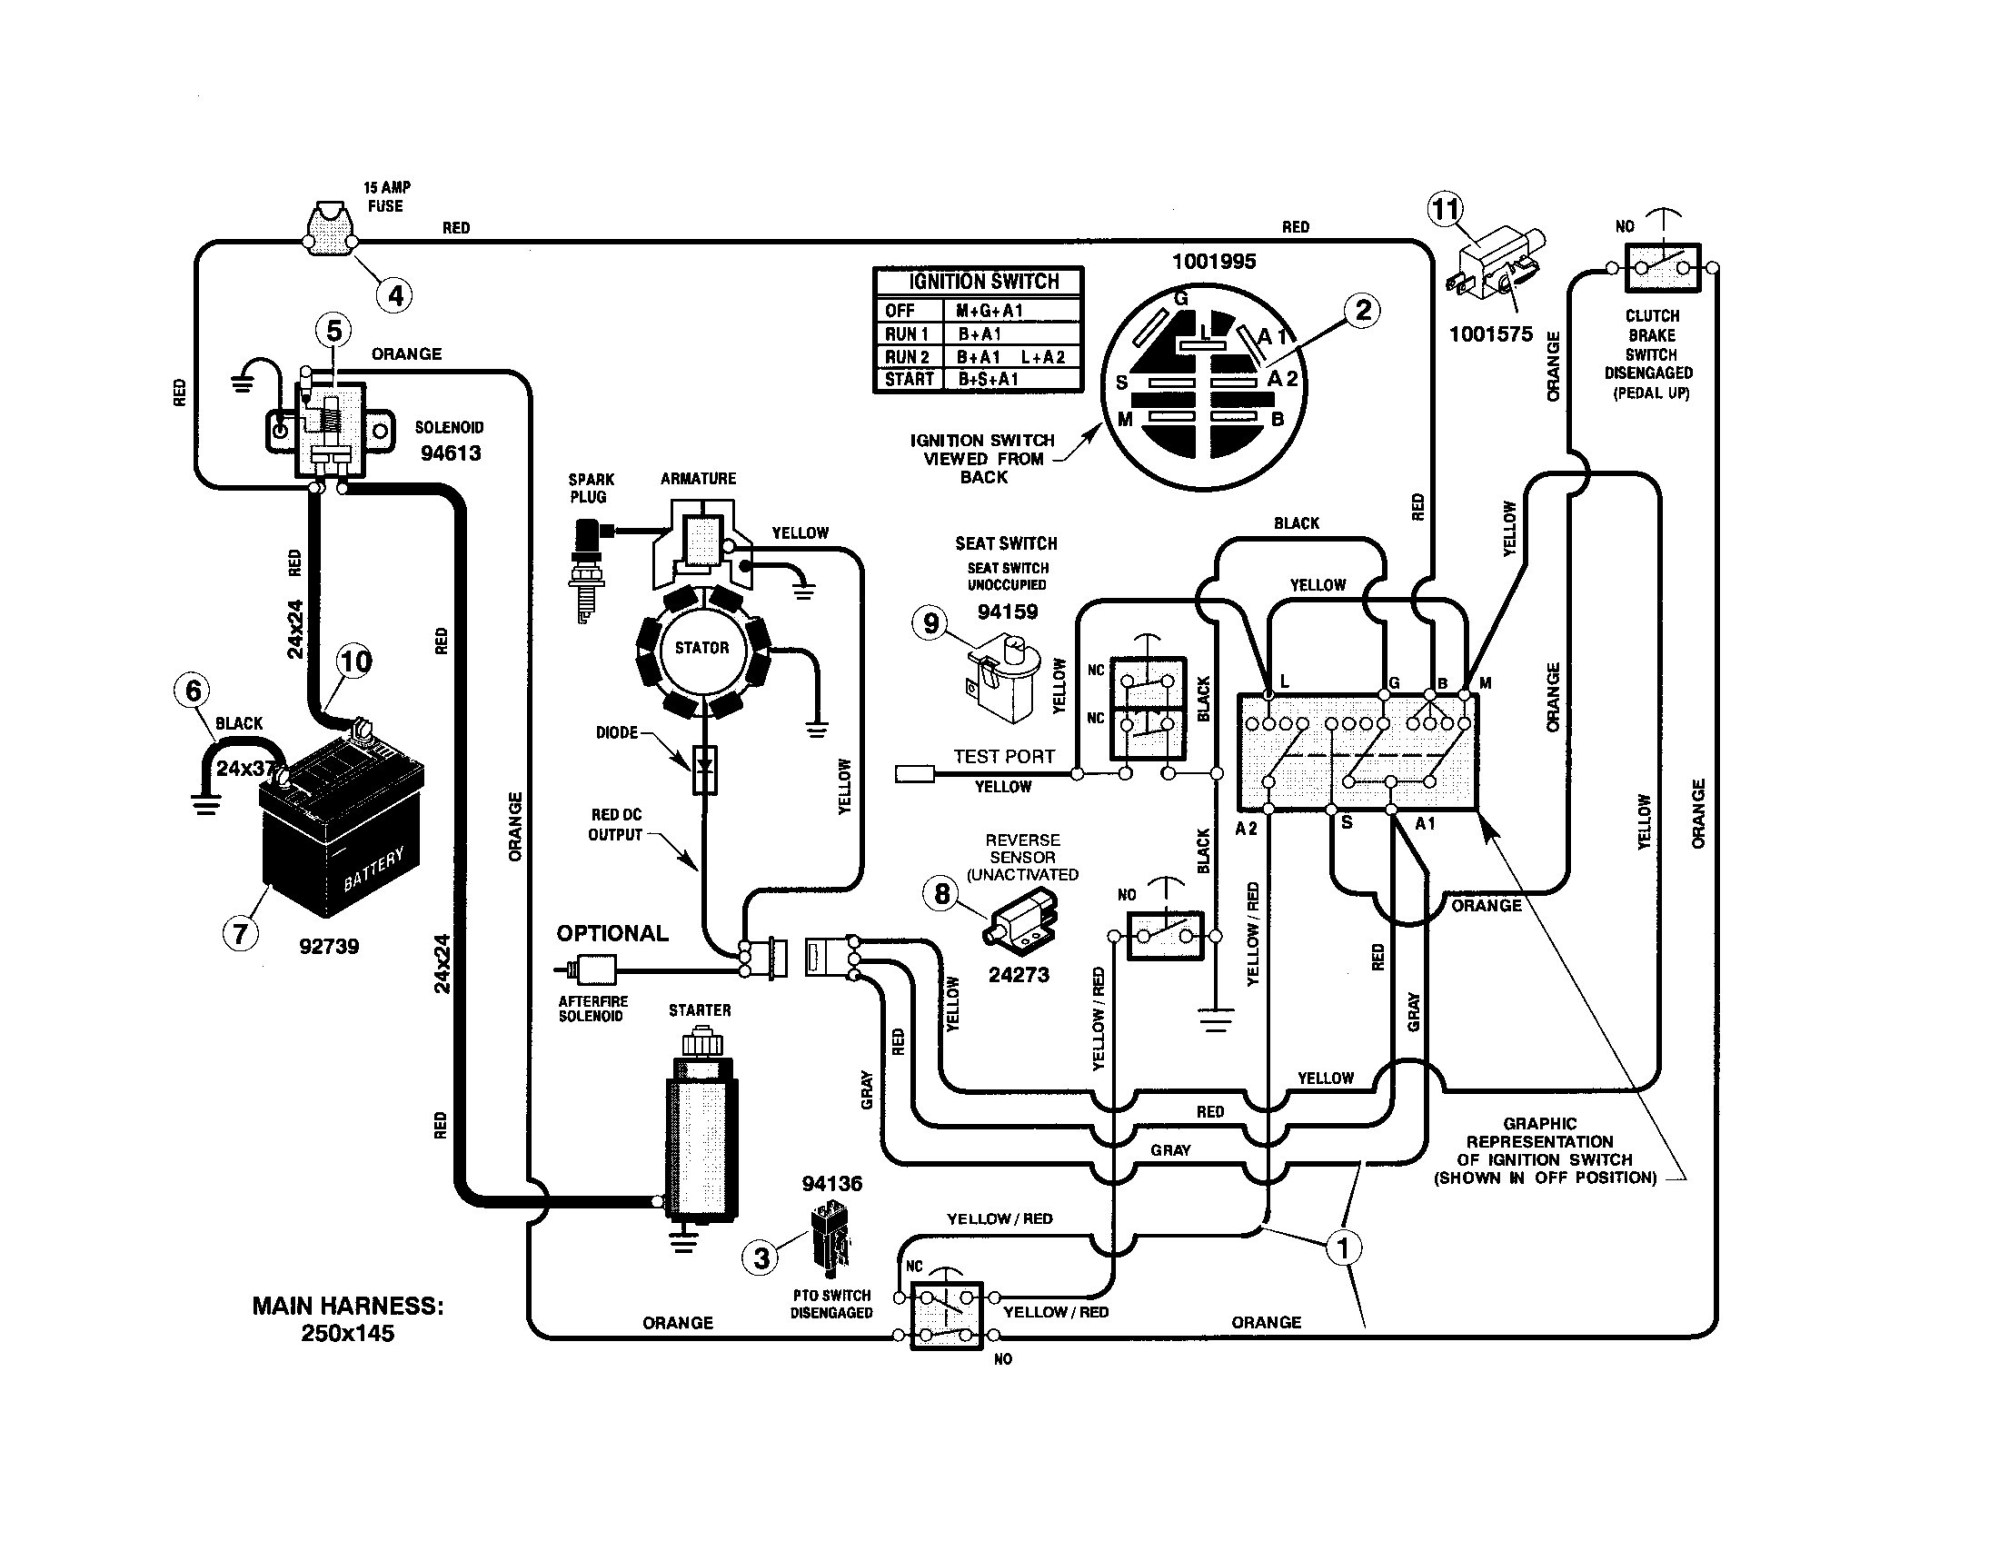 hight resolution of mtd engine wiring diagram wiring diagram home briggs and stratton riding lawn mower wiring diagram guide